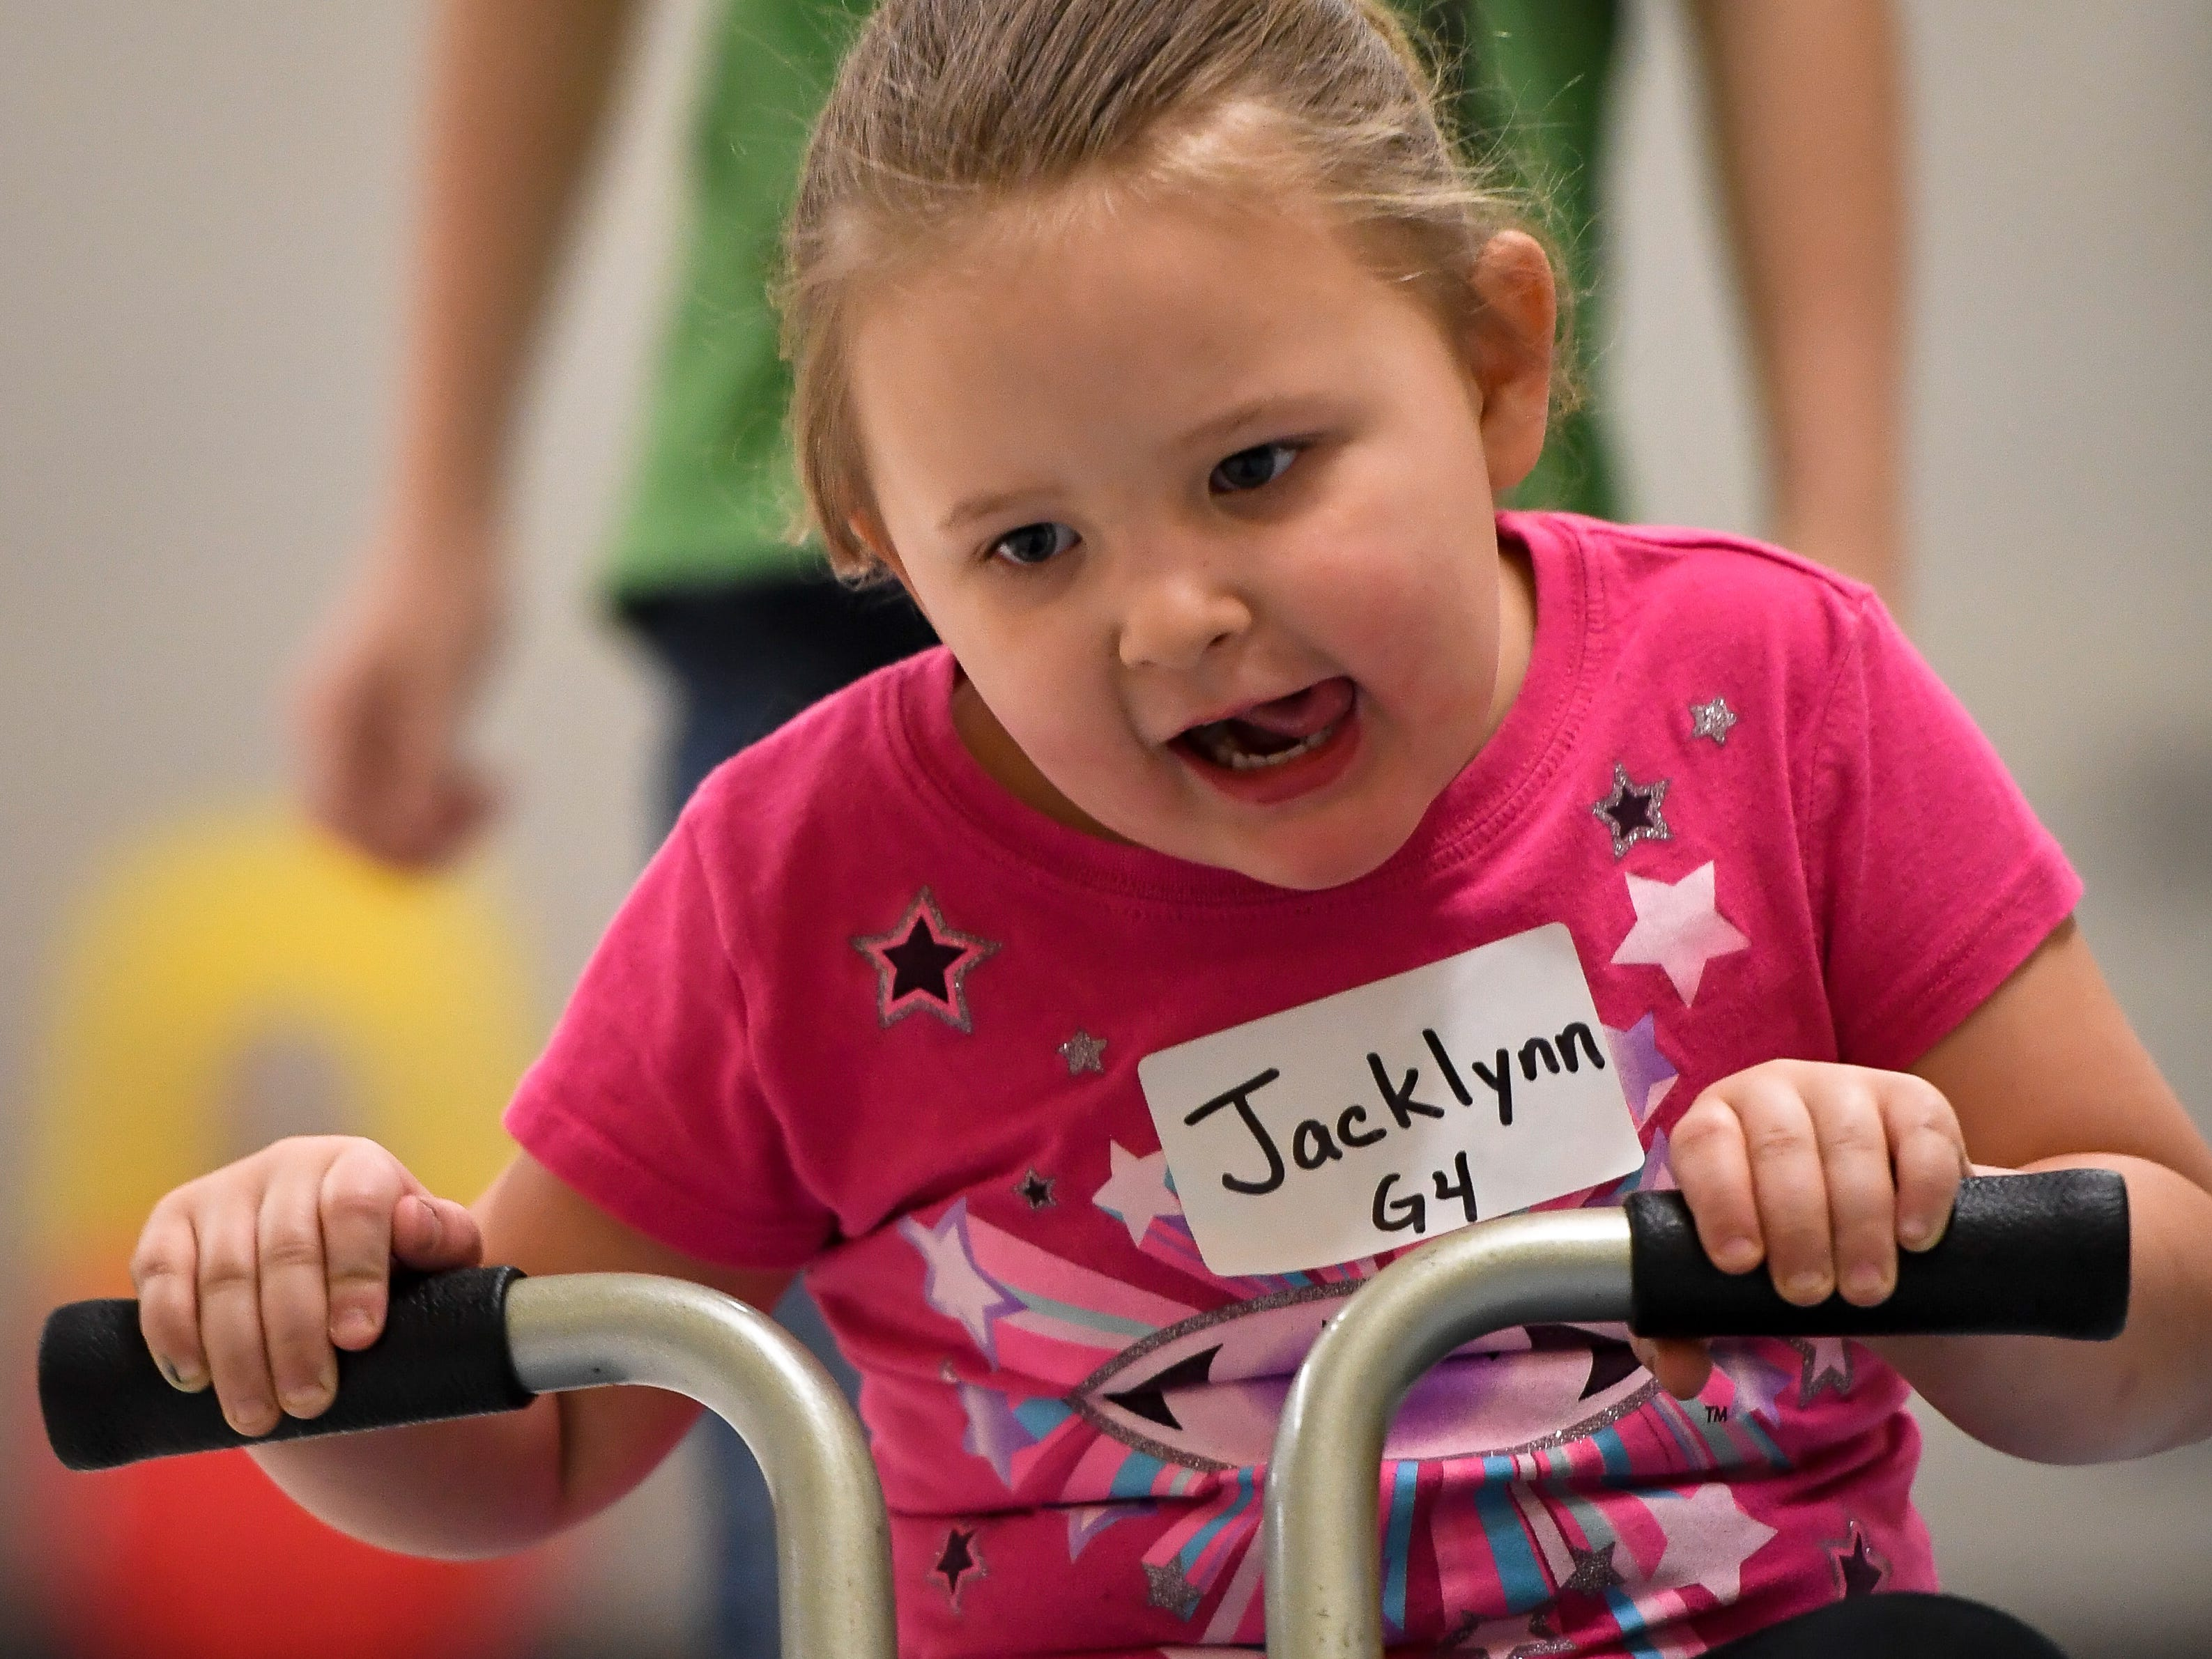 Jacklynn Wright rounds a corner in the bike race competition during the Special Olympics Unified Champion School Young Athlete program at Culver Early Learning Center Friday, March 22, 2019.